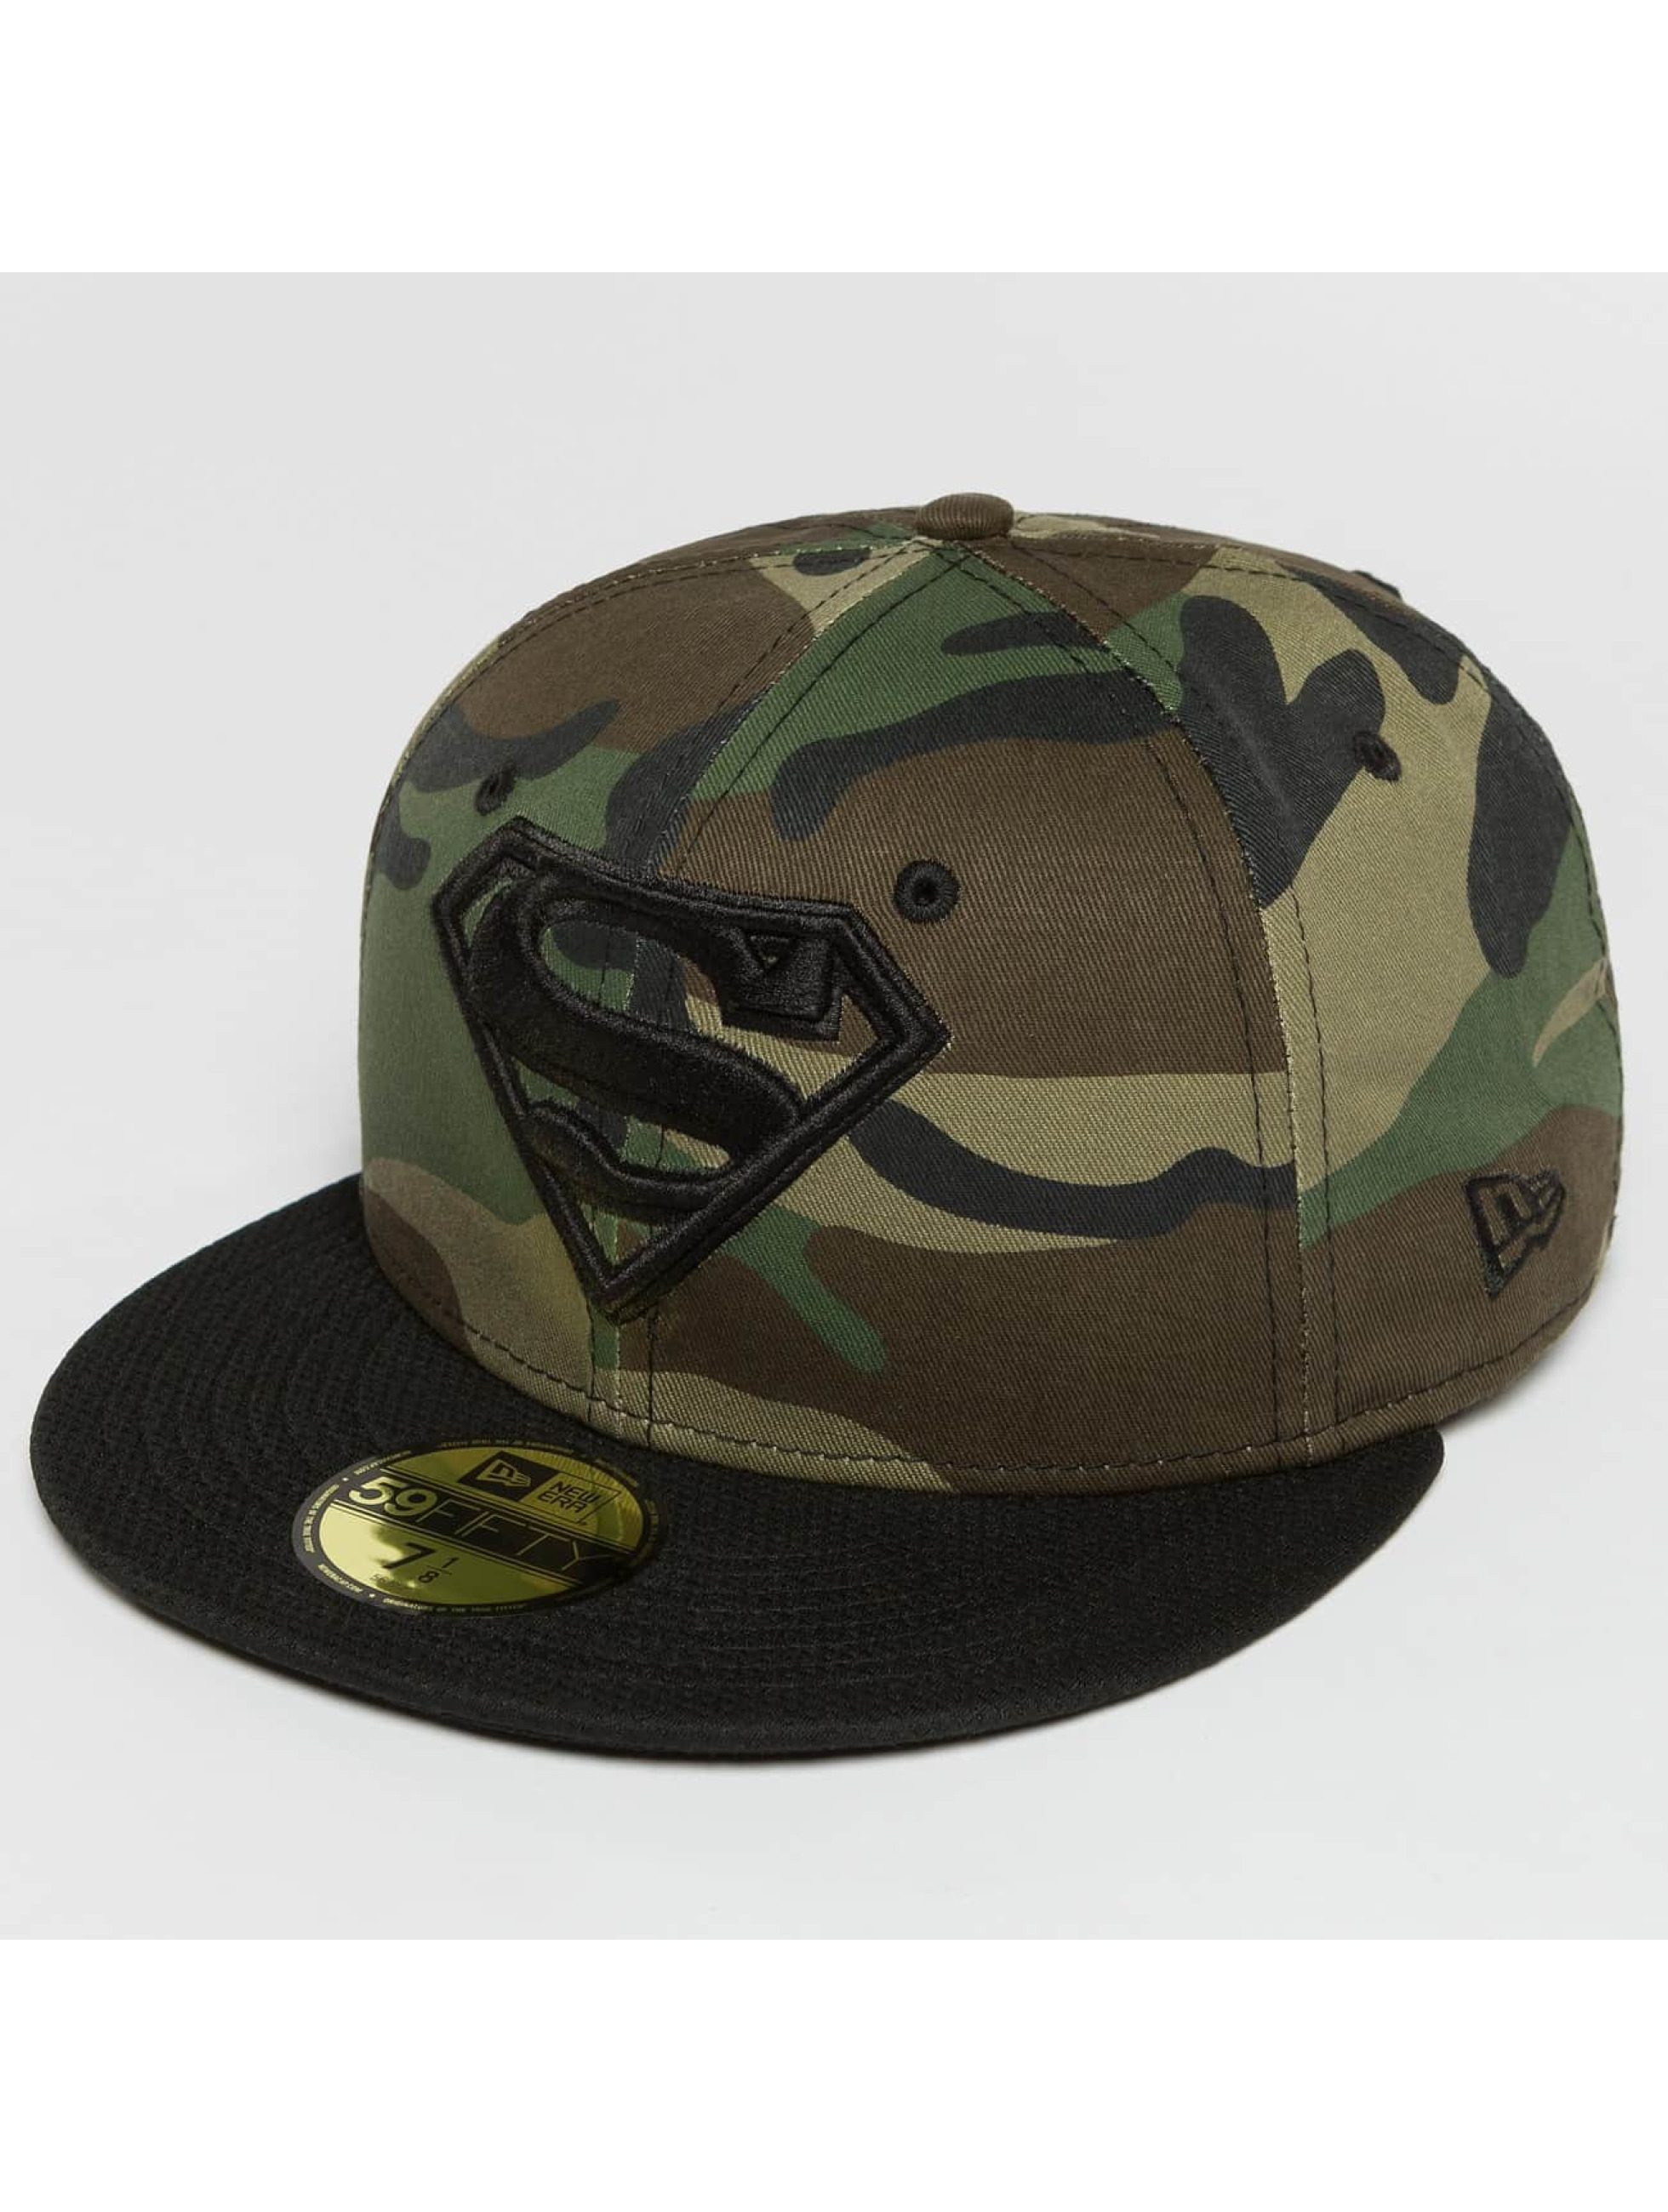 New Era Fitted Cap Camohero Superman kamuflasje